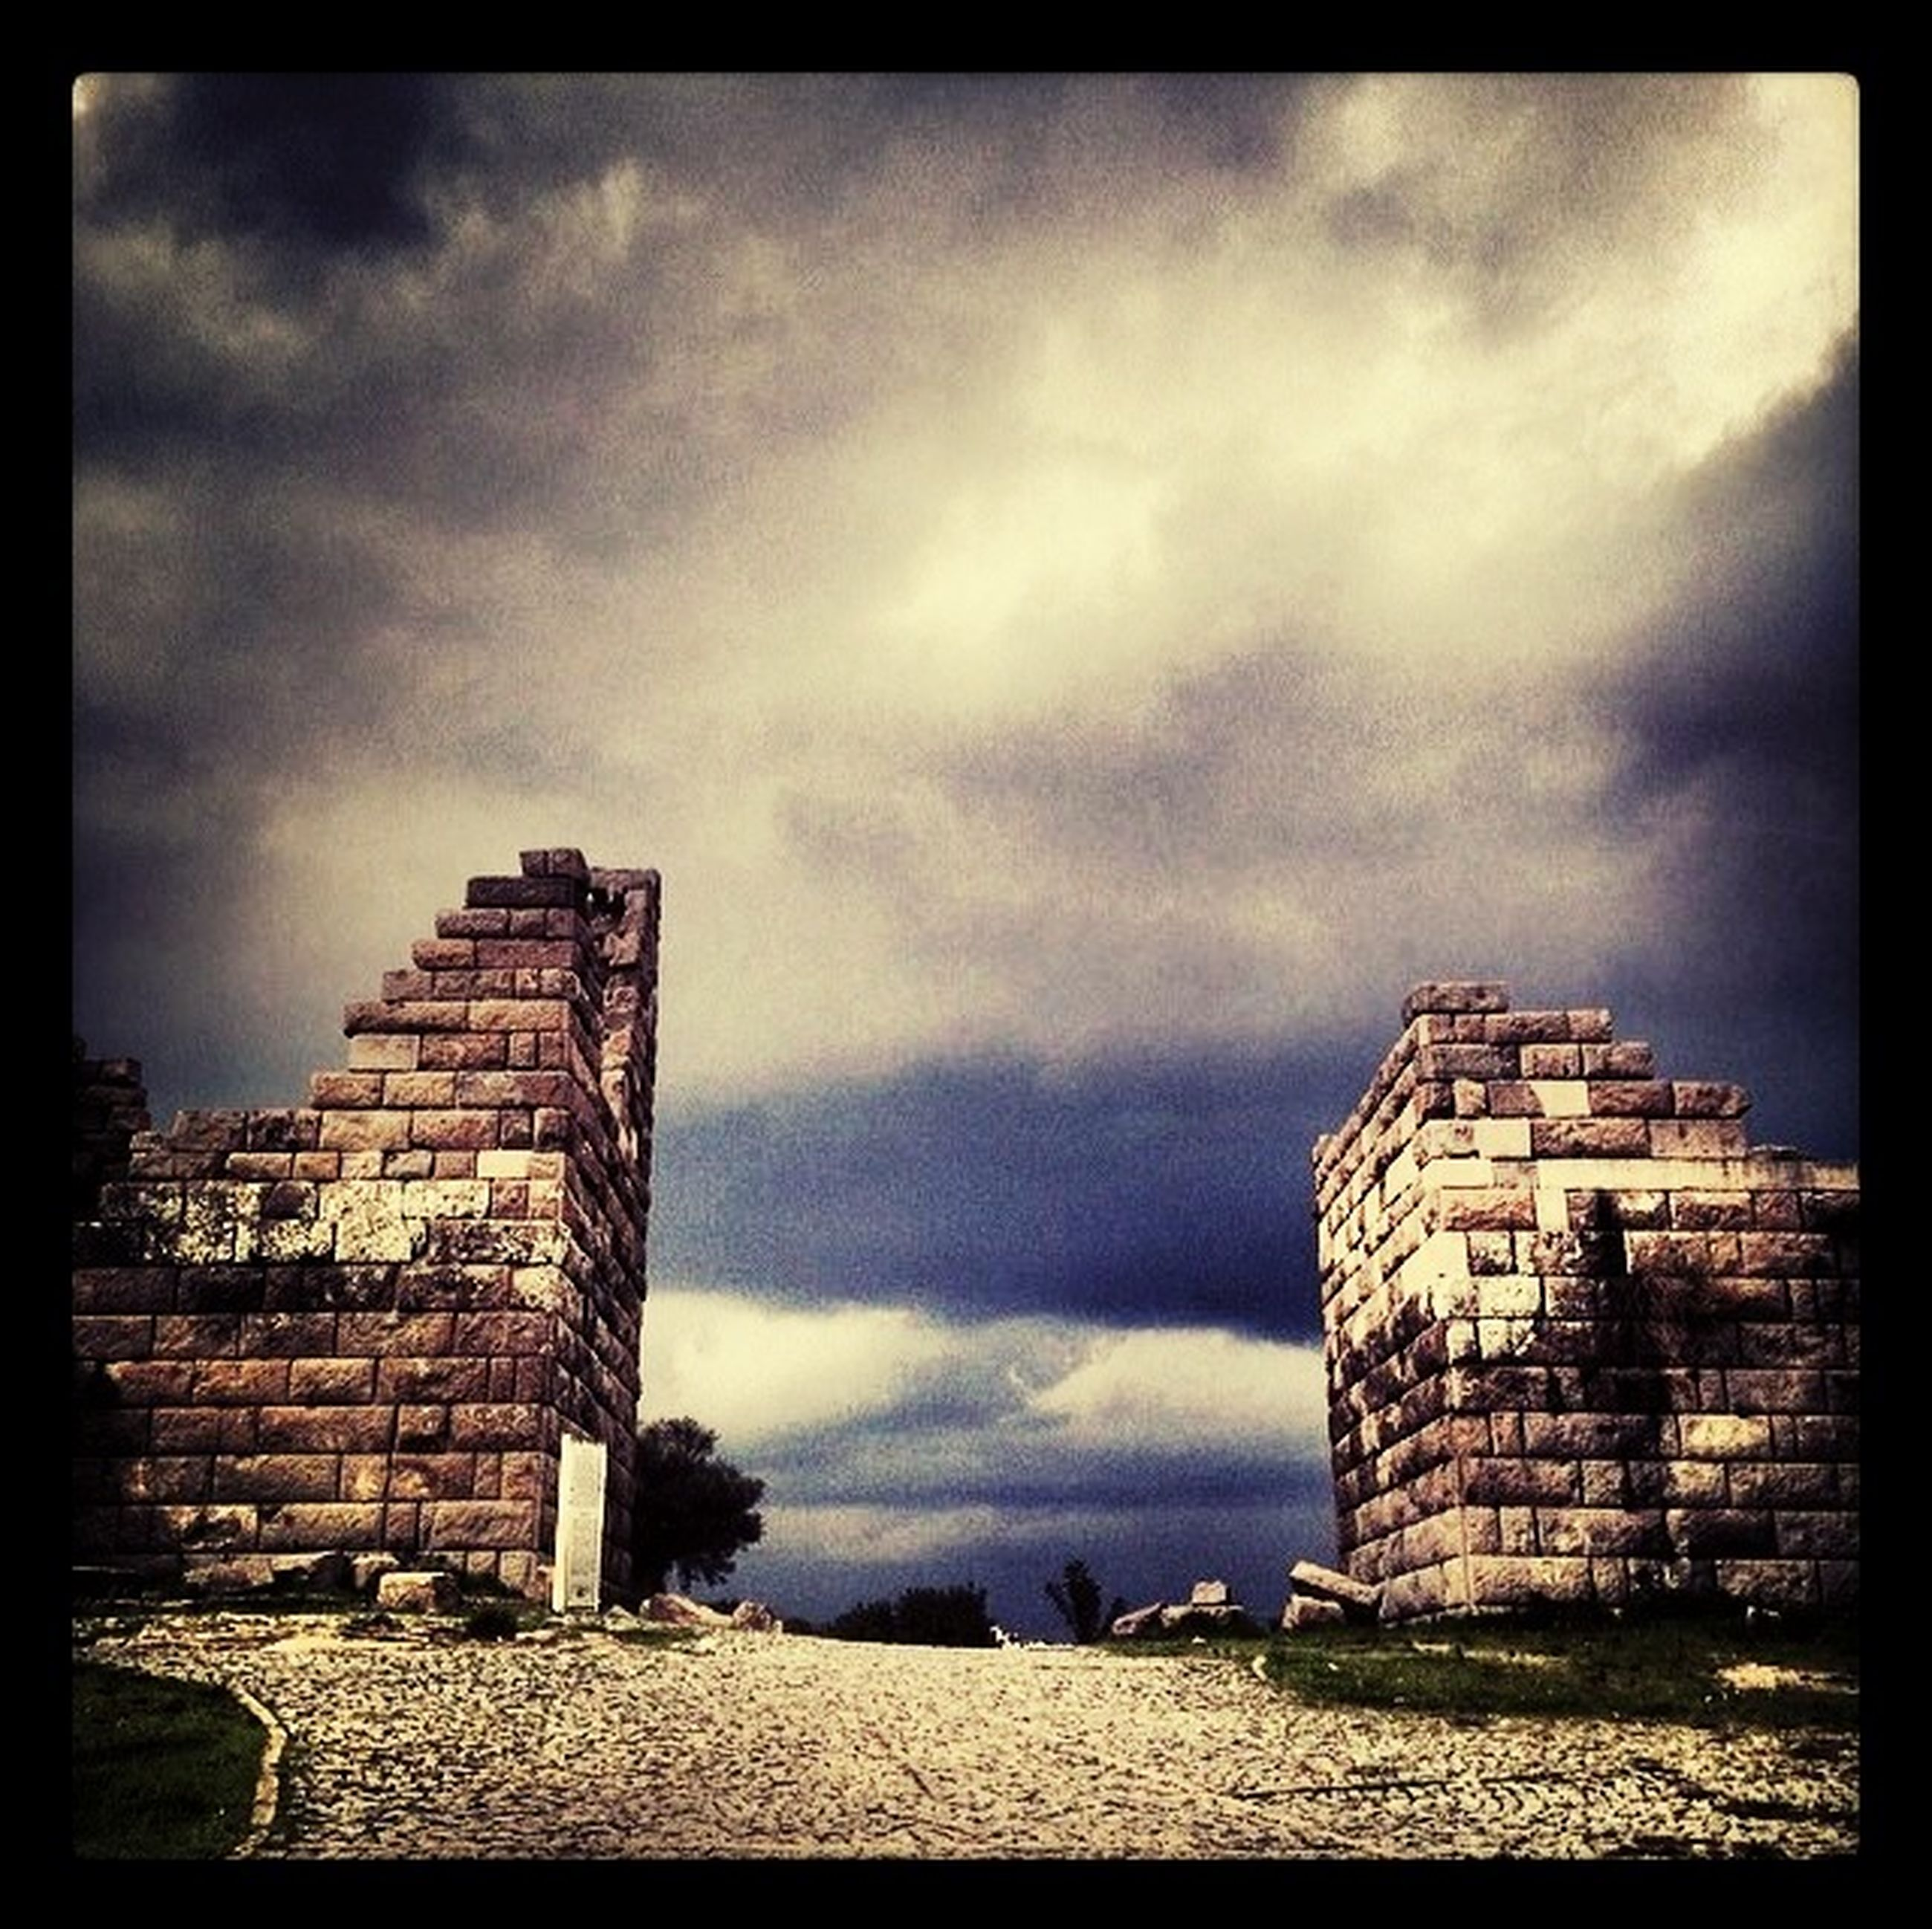 architecture, built structure, building exterior, sky, cloud - sky, cloudy, abandoned, damaged, old, obsolete, run-down, deterioration, auto post production filter, old ruin, ruined, cloud, weathered, history, low angle view, stone wall